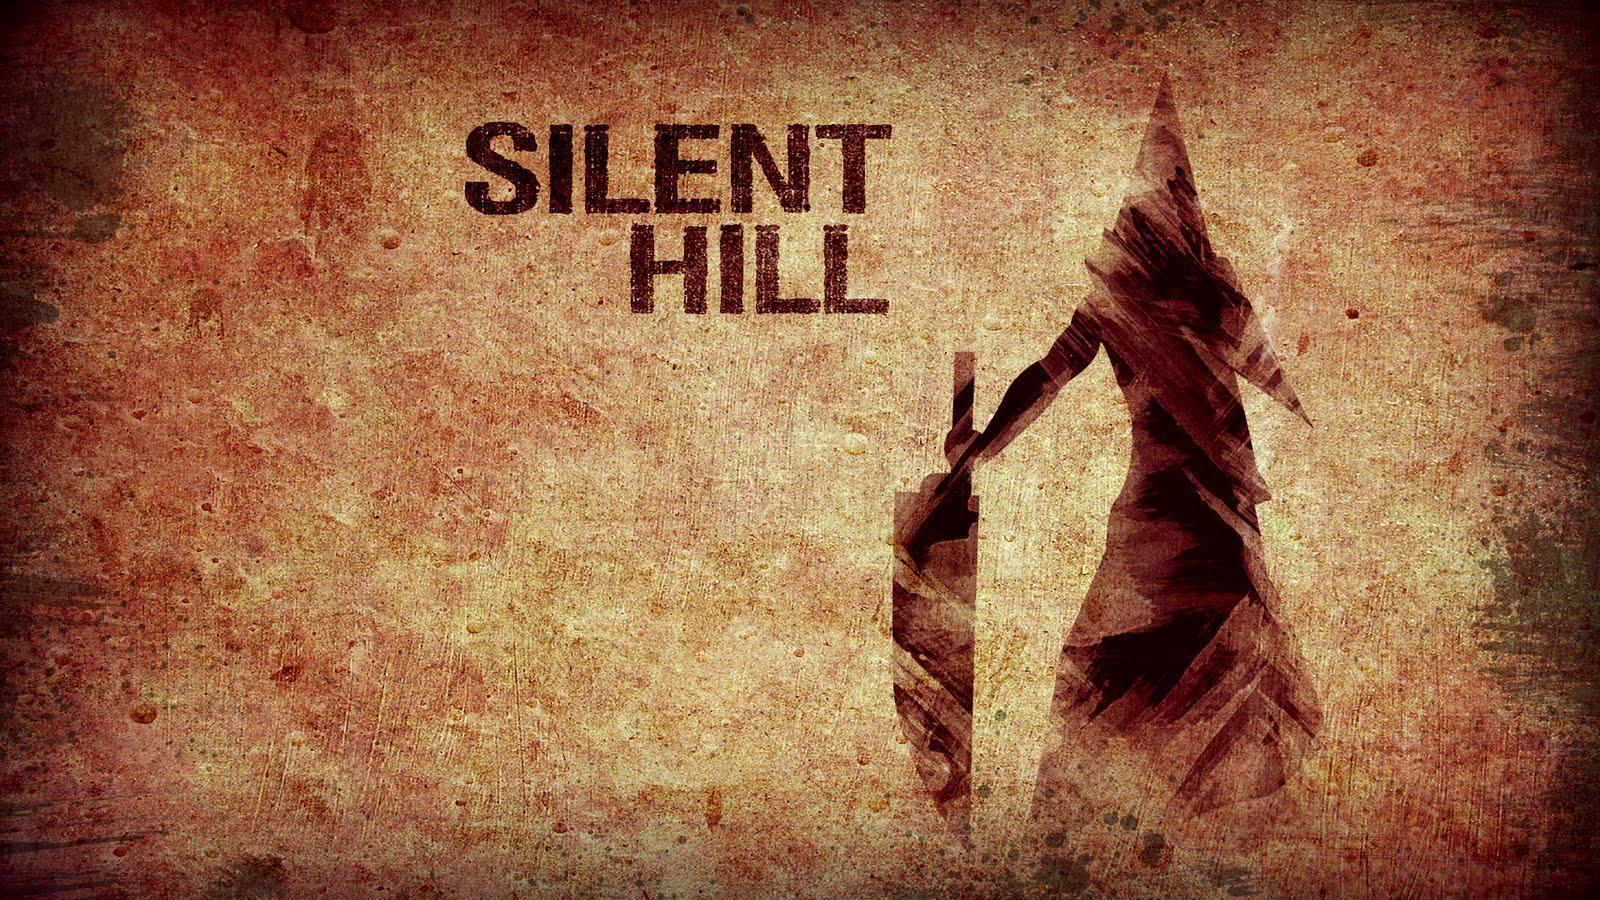 pyramid head wallpaper 1280x800 - photo #25